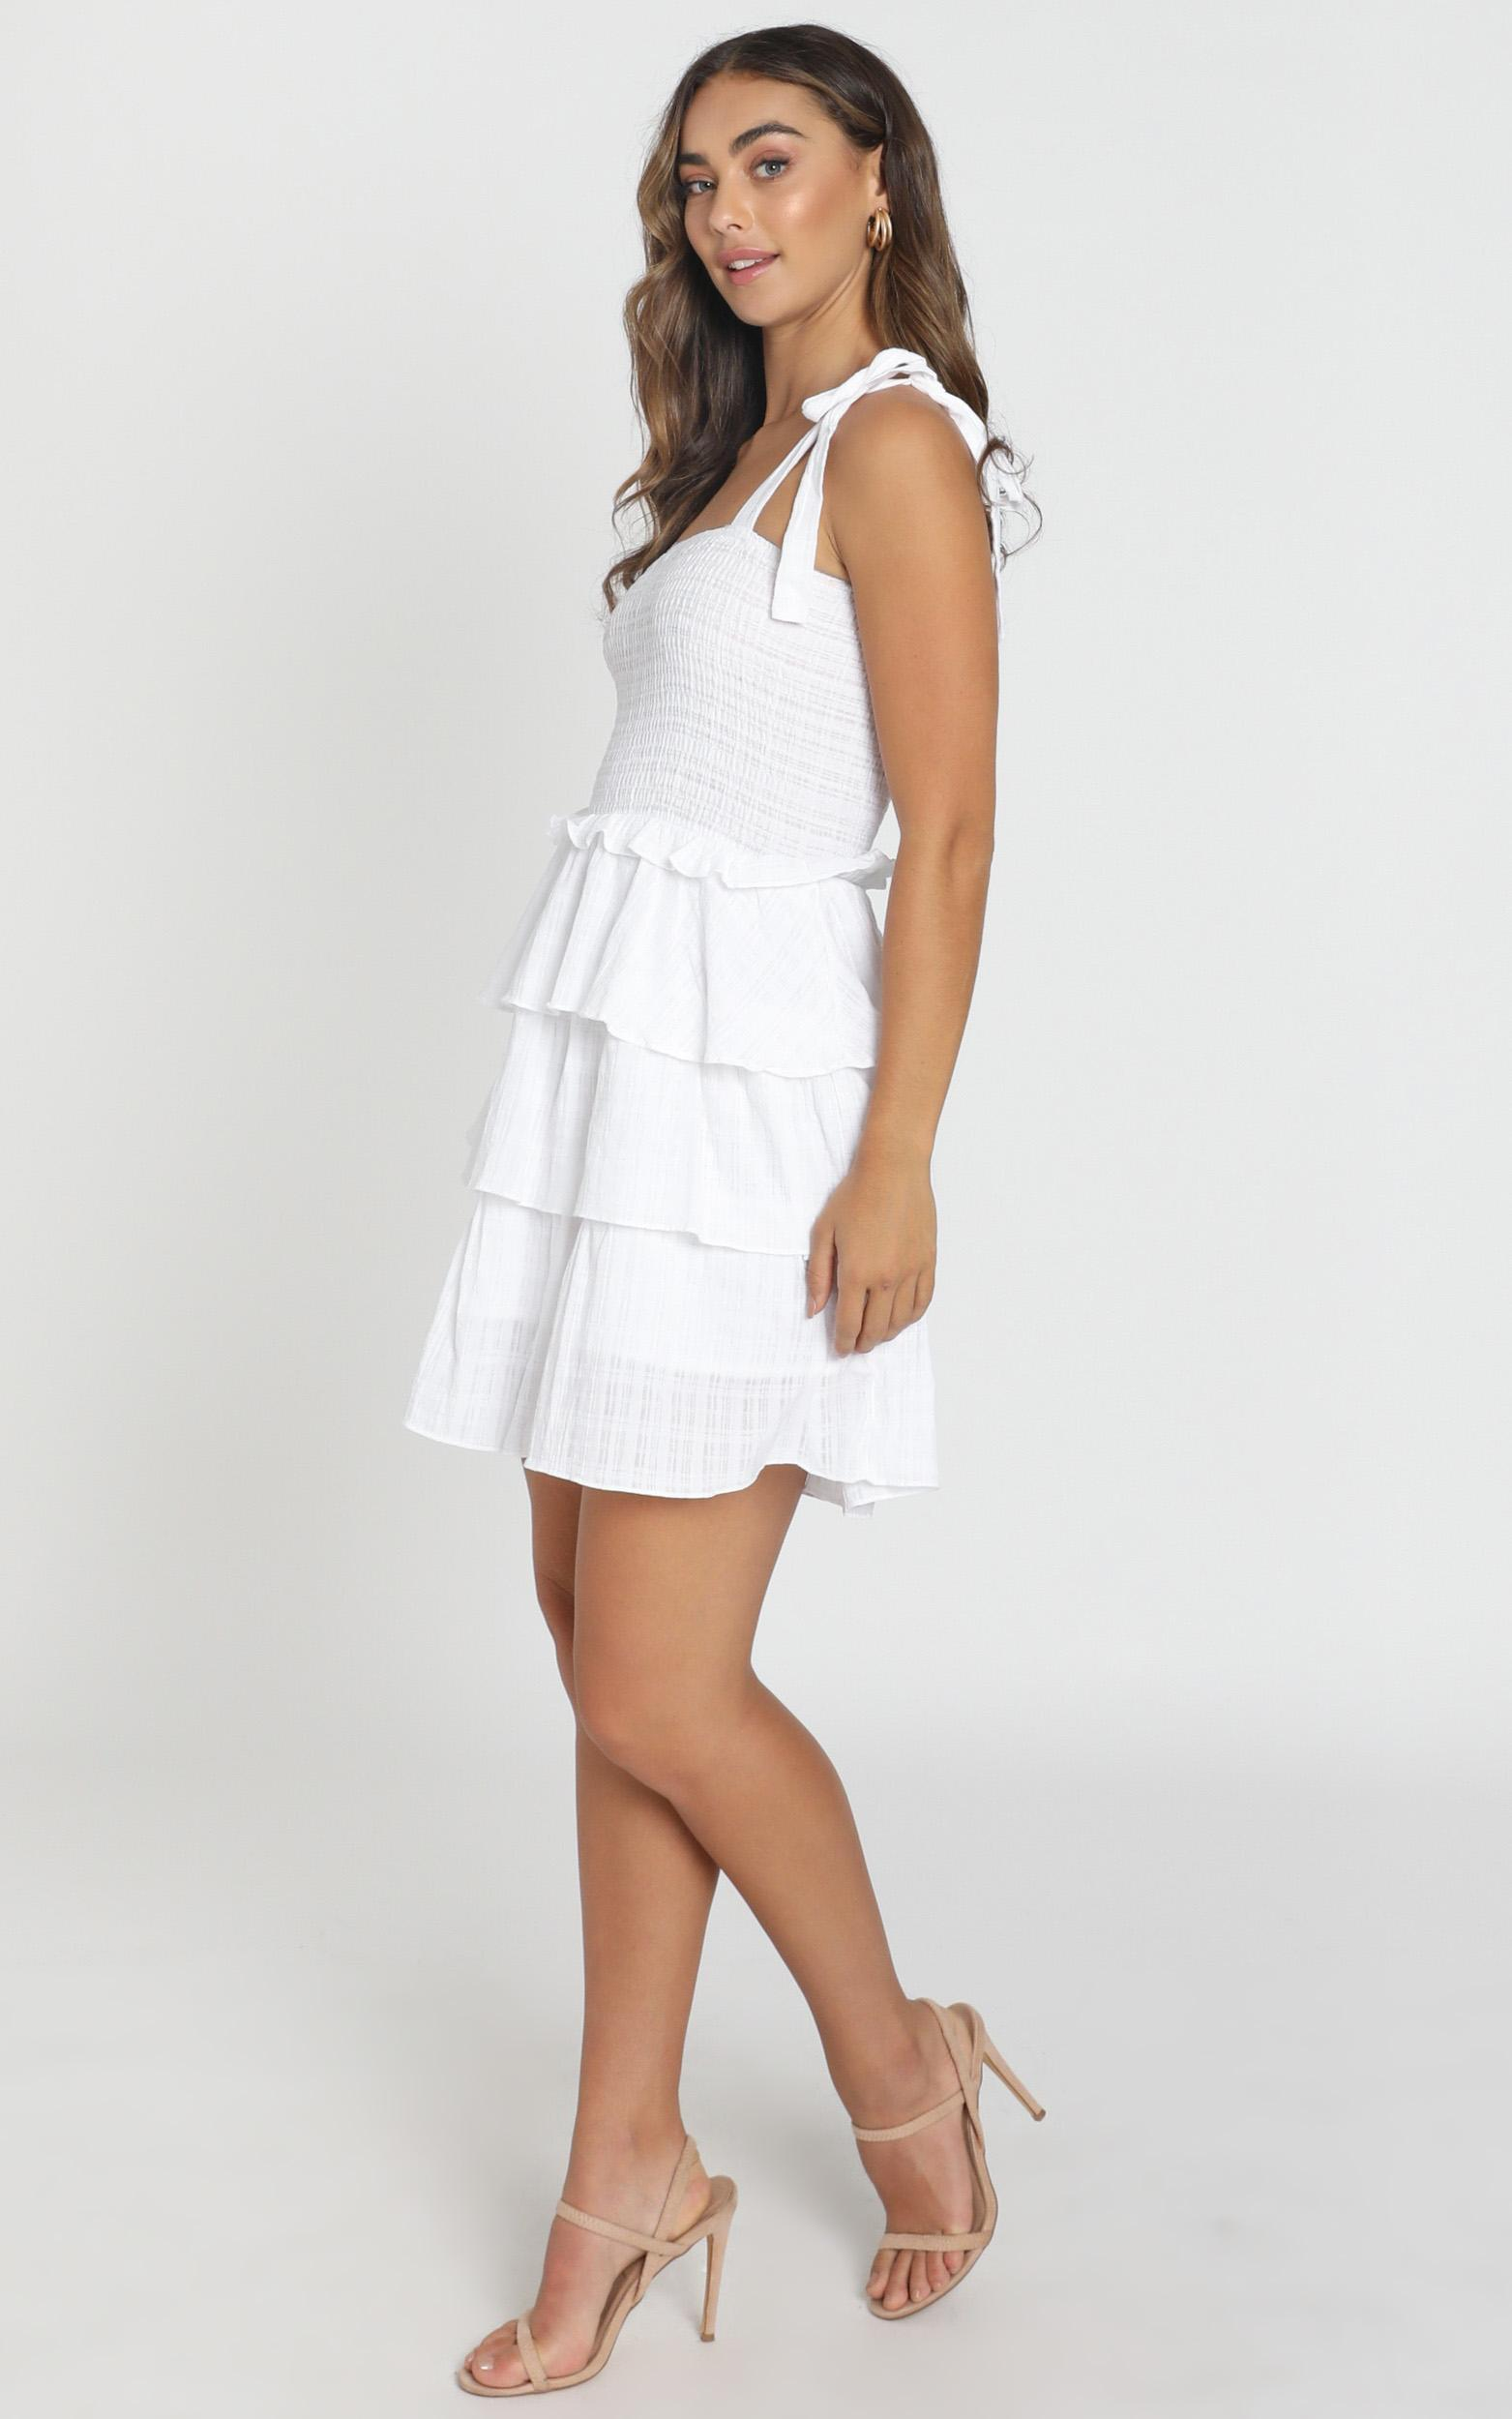 Paislee Tied Dress in white - 6 (XS), White, hi-res image number null